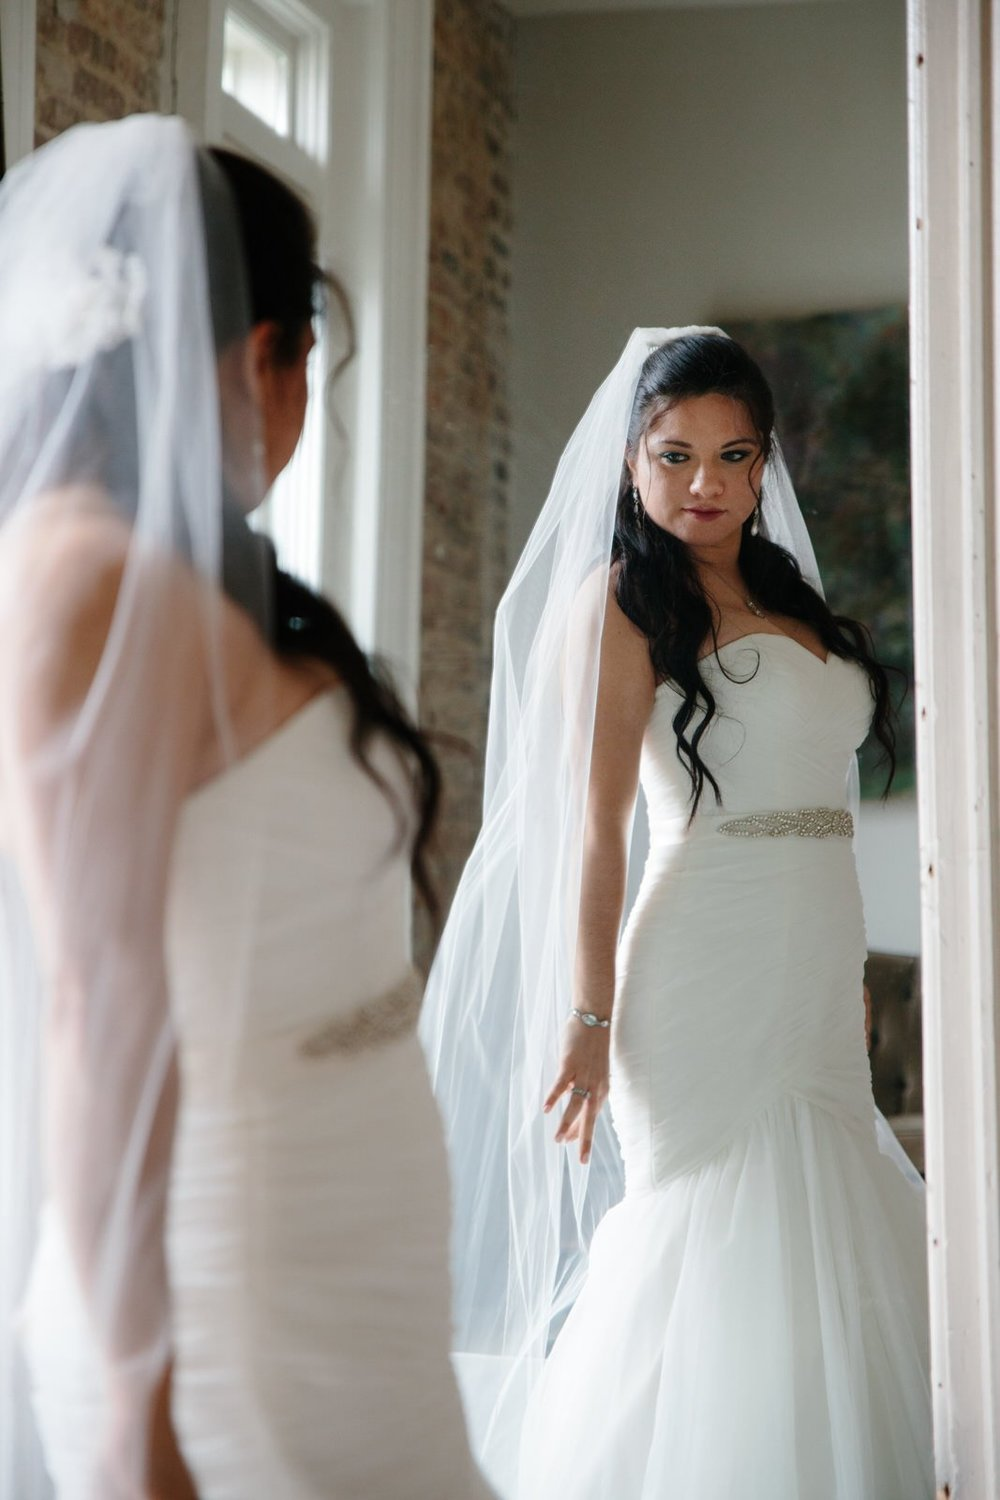 A beautiful bride admiring herself in the mirror